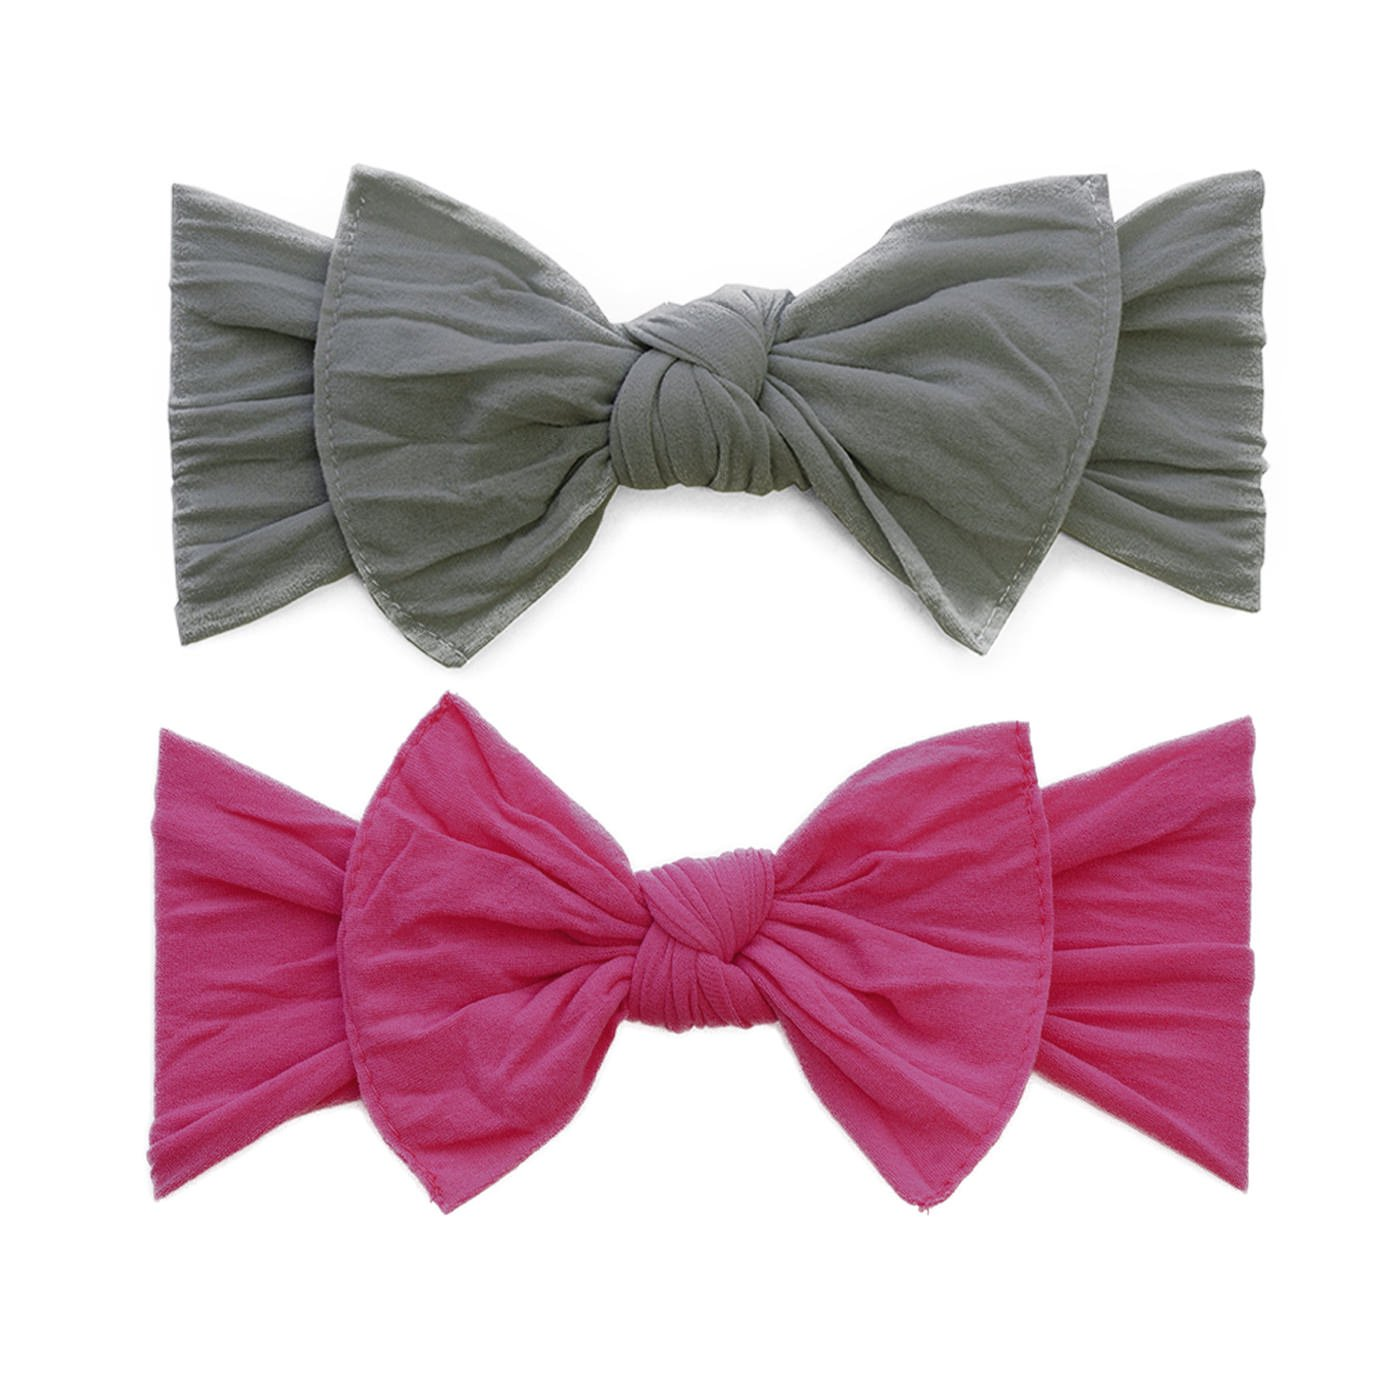 777053e2569e Amazon.com  Baby Bling Bow 2 Pack  Classic Knots Girls Baby Headbands -  MADE IN USA - Grey Hot Pink  Clothing